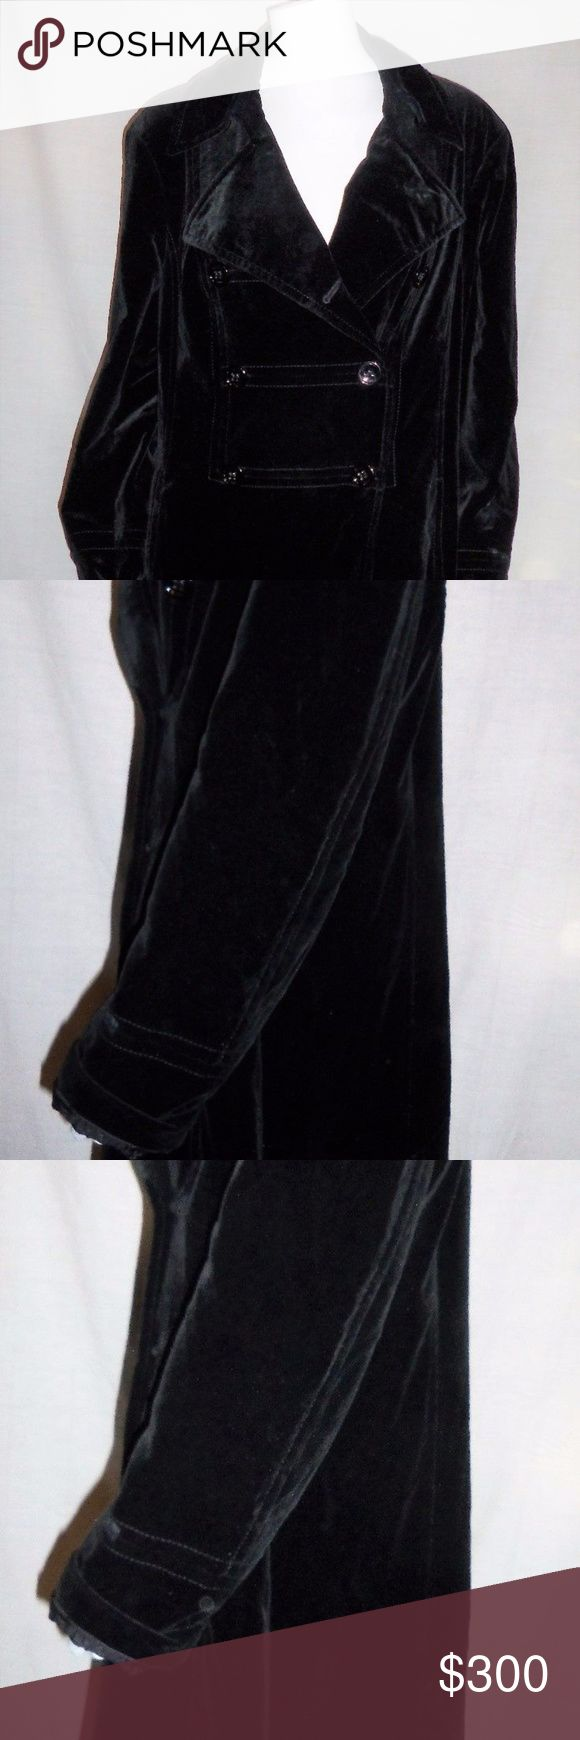 """Escada Sport Full Length lined Black Velvet Coat ESCADA SPORT BEAUTIFUL FULL LENGTH BLACK VELVET COAT Size 44 Large US 14 It is full lined I do not see any pulls or stains on it. It is a size 44 Large 14 in US. It is in great Preowned condition.  Has been in storage.   Measurements are Approx:  Size: 44 (Large) Double Breasted Bust: 22"""" across or 44""""around Length:43"""" from top shoulder to bottom Escada Jackets & Coats"""